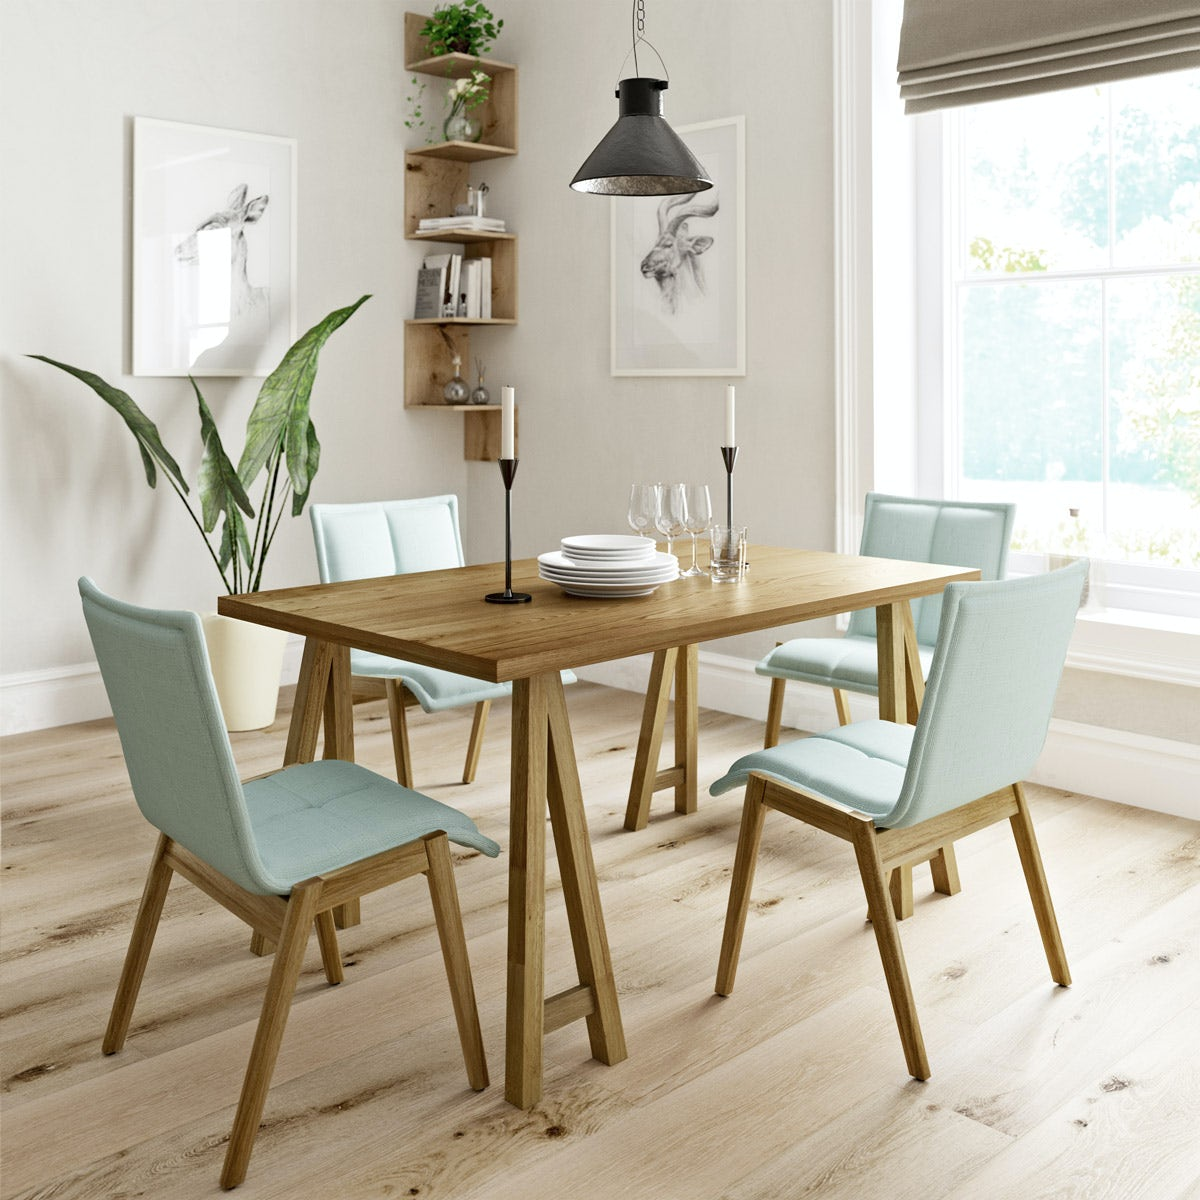 Hudson oak trestle table with 4 x Hadley light cyan dining chairs